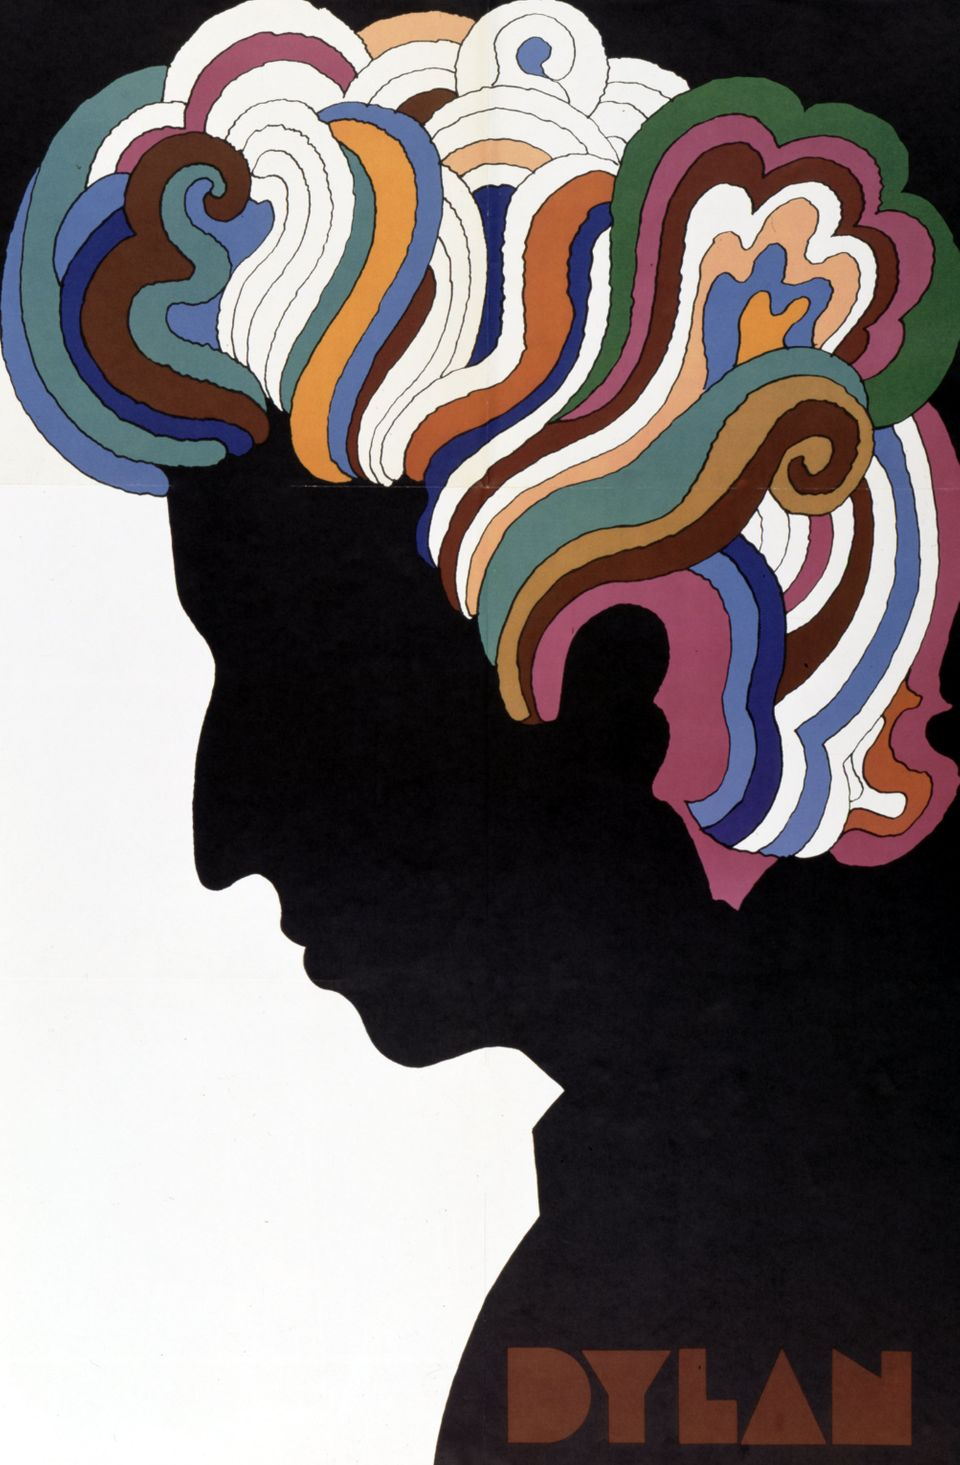 Bob Dylan poster designed by Milton Glaser as an insert to the album 'Bob Dylan's Greatest Hits' which was released on March